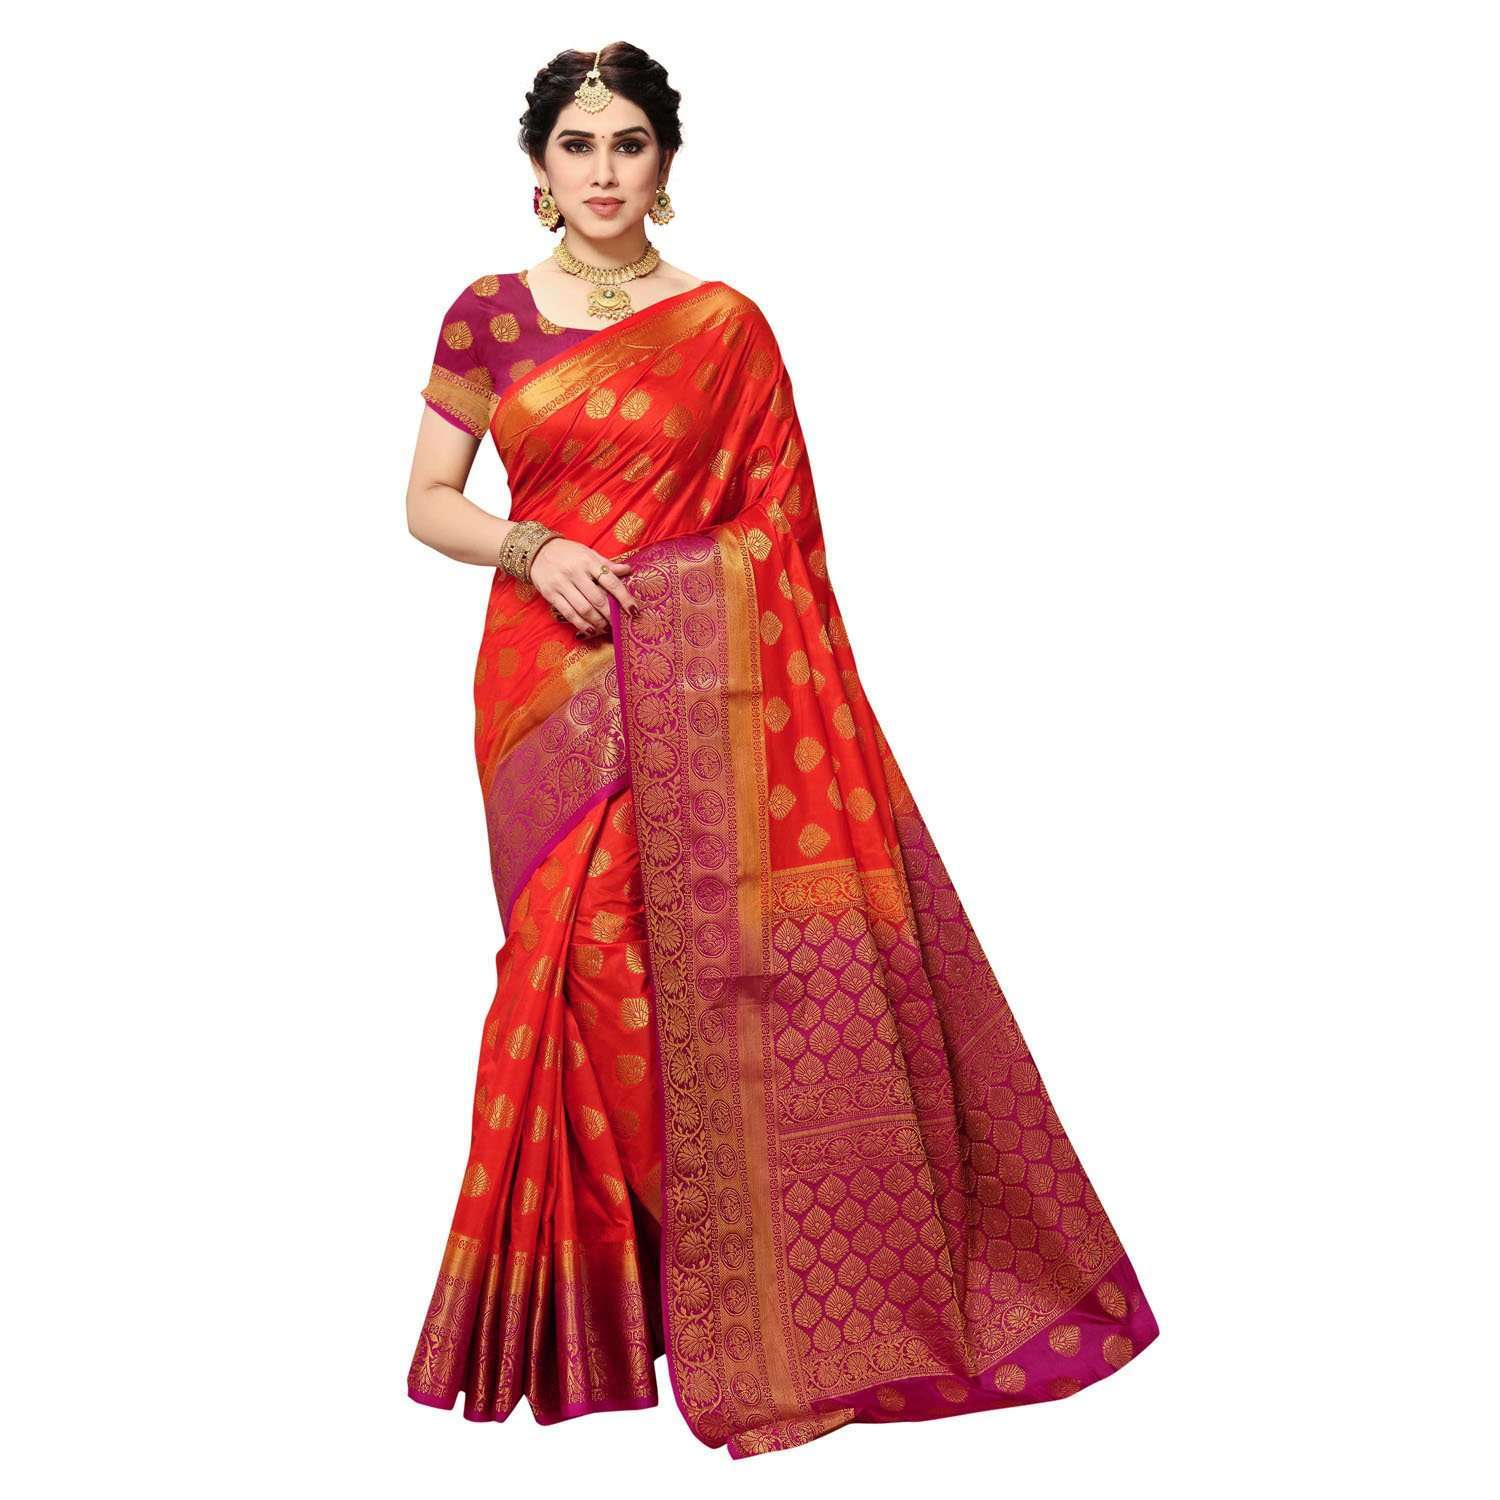 arars Women's Kanchipuram Pattu banarasi Silk Saree With Blouse (510_orange&magentha )